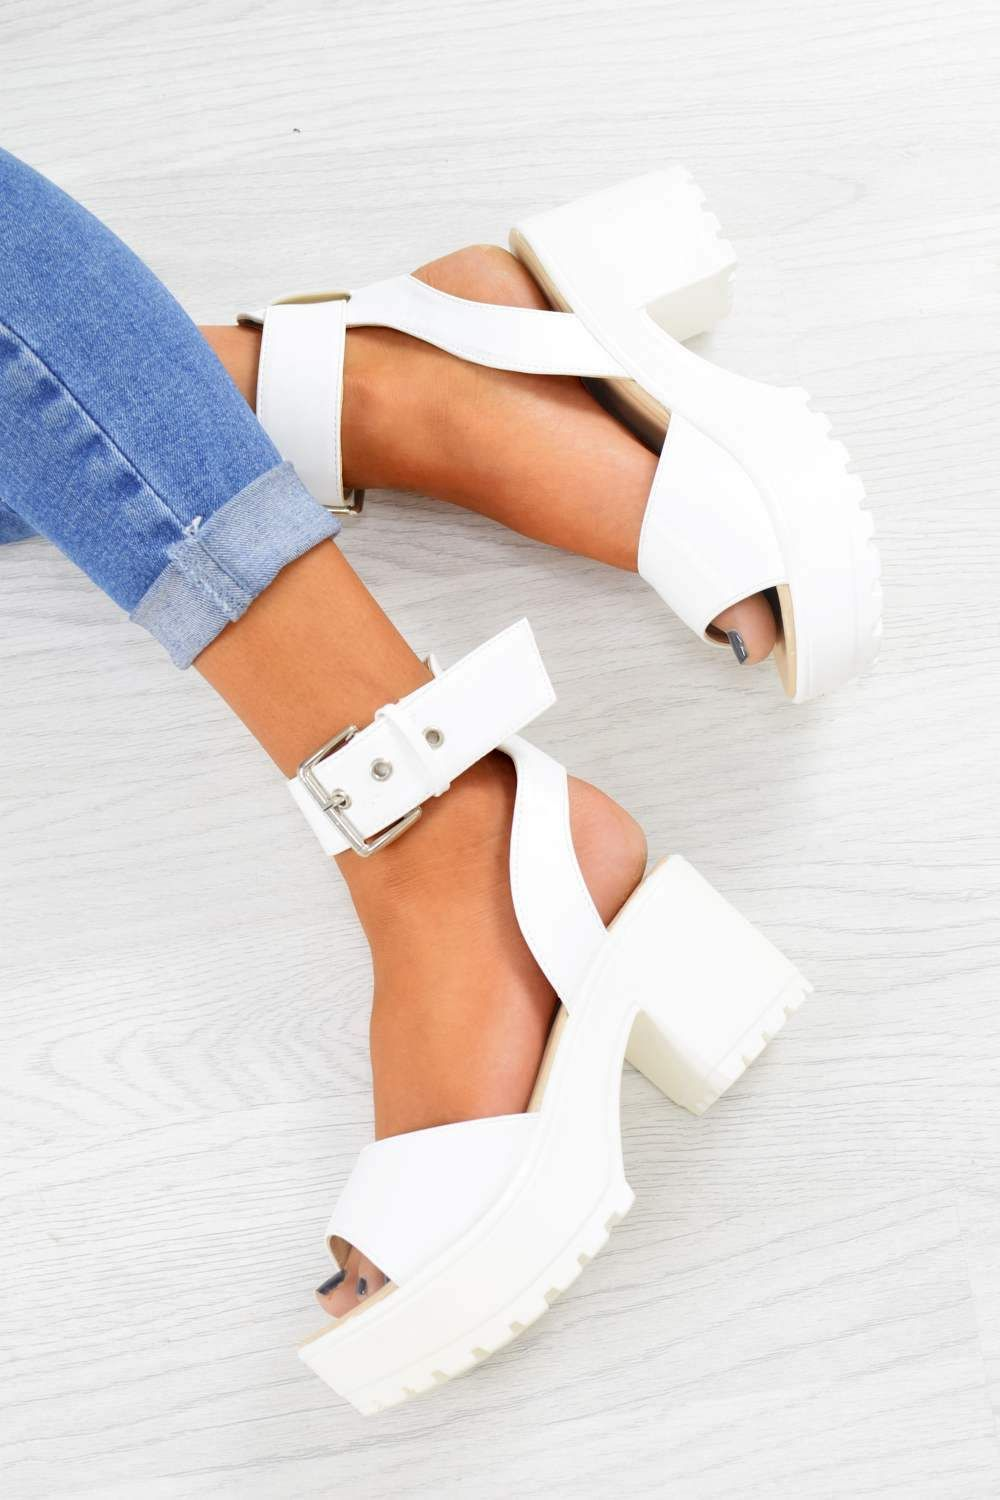 903d10d154 MOVE IT Chunky Platform Buckle Sandals - White PU in 2019 | shoes ...